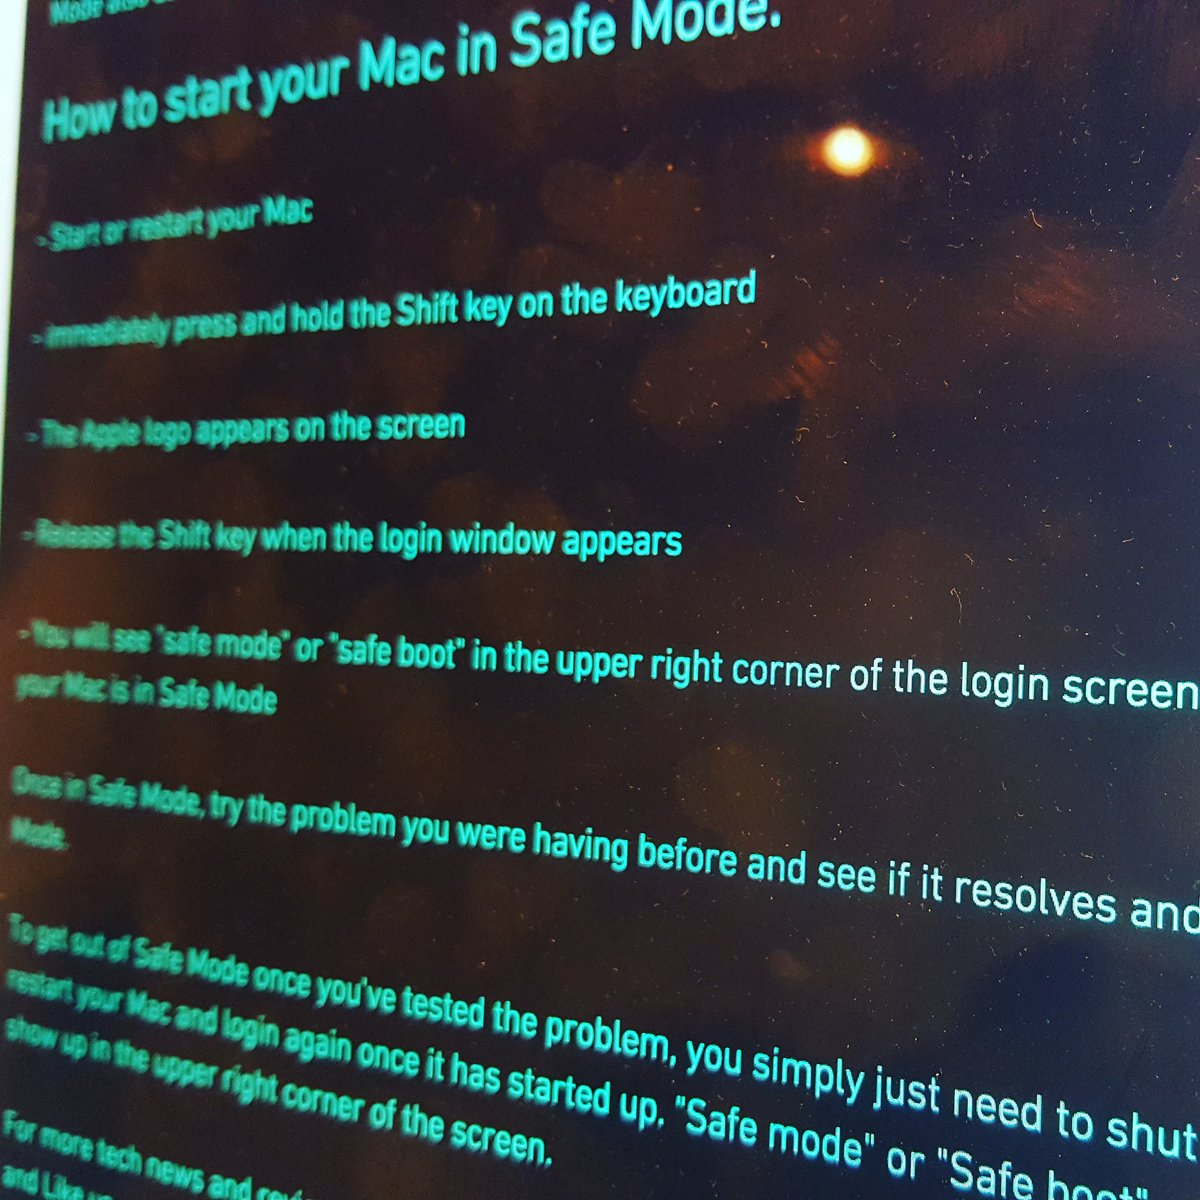 how to start in safe mode